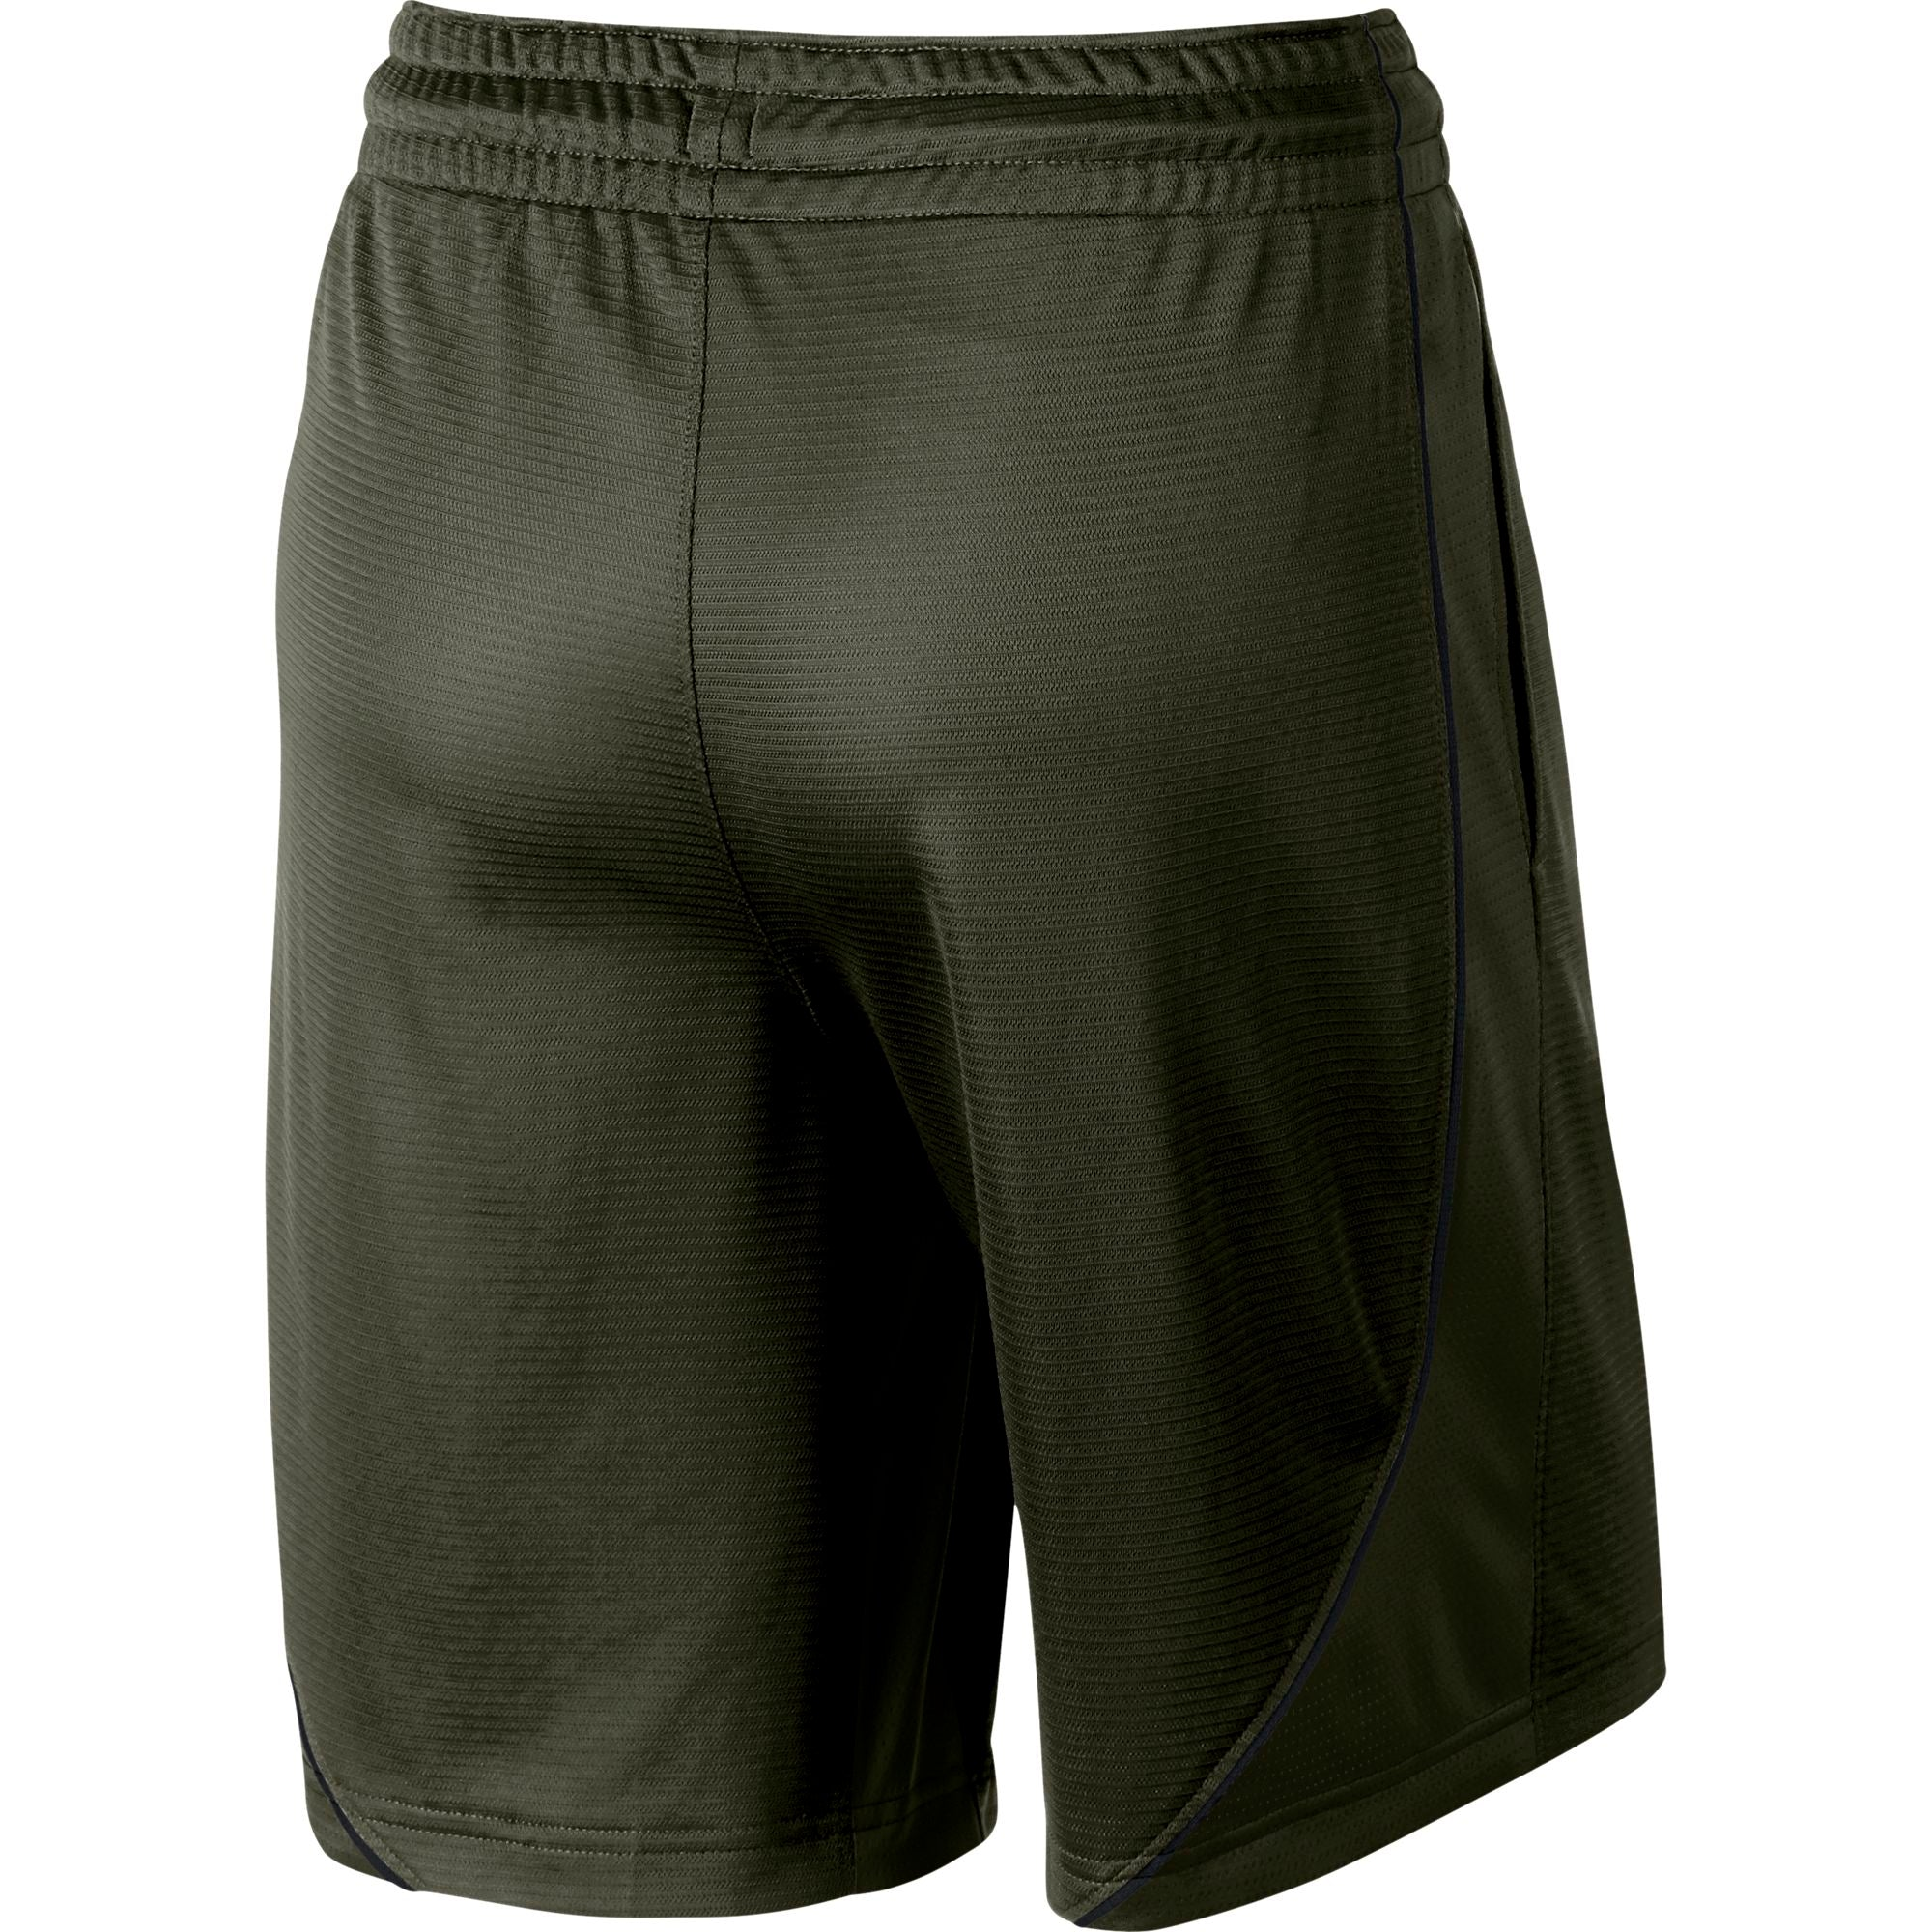 Nike Womens Basketball Dry Shorts - Cargo Khaki/Black